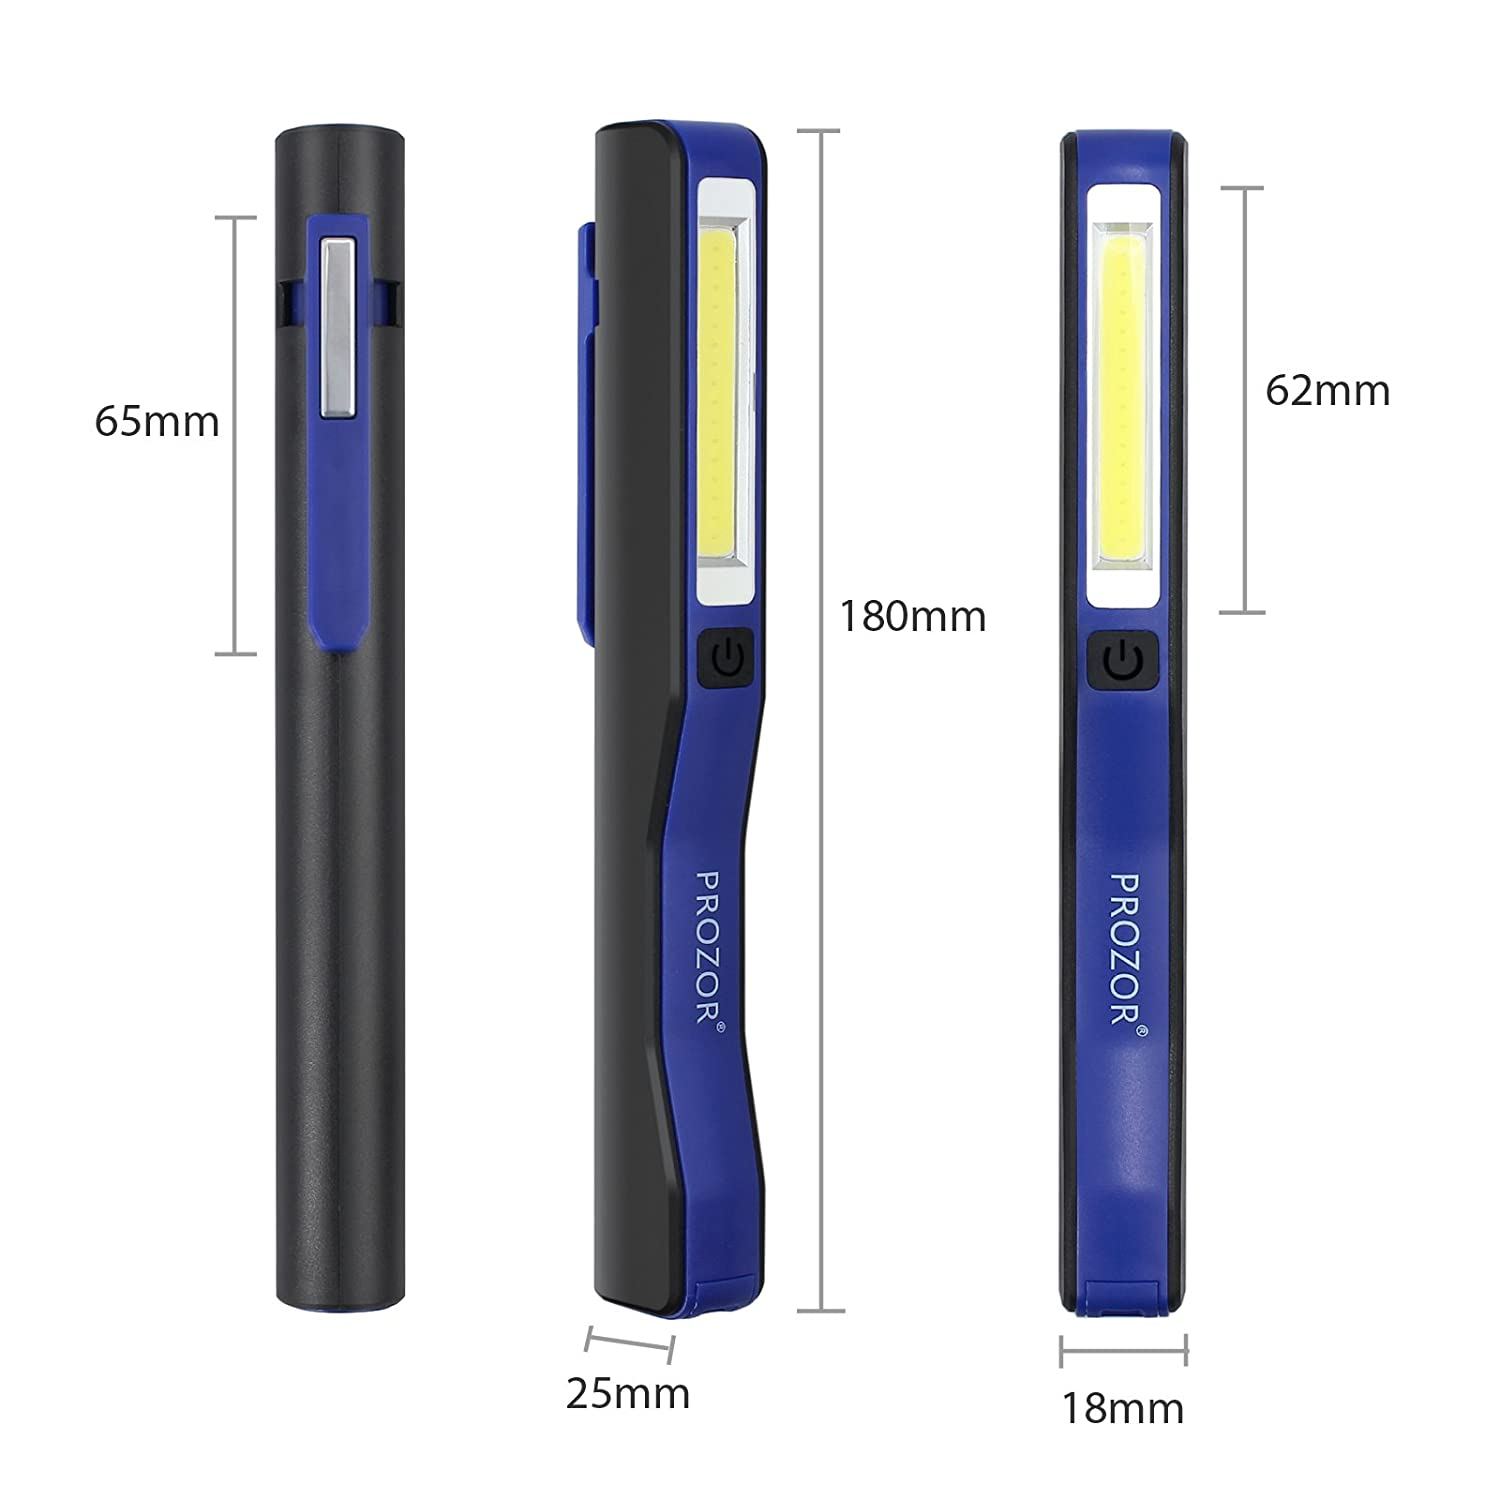 PROZOR LED Inspection Lamp Rechargeable Mini Torch with Magnetic Clip And USB Charging Cable 1W//3W COB LED Work Light for Auto Repair Garage Emergency Camping Hiking-Blue